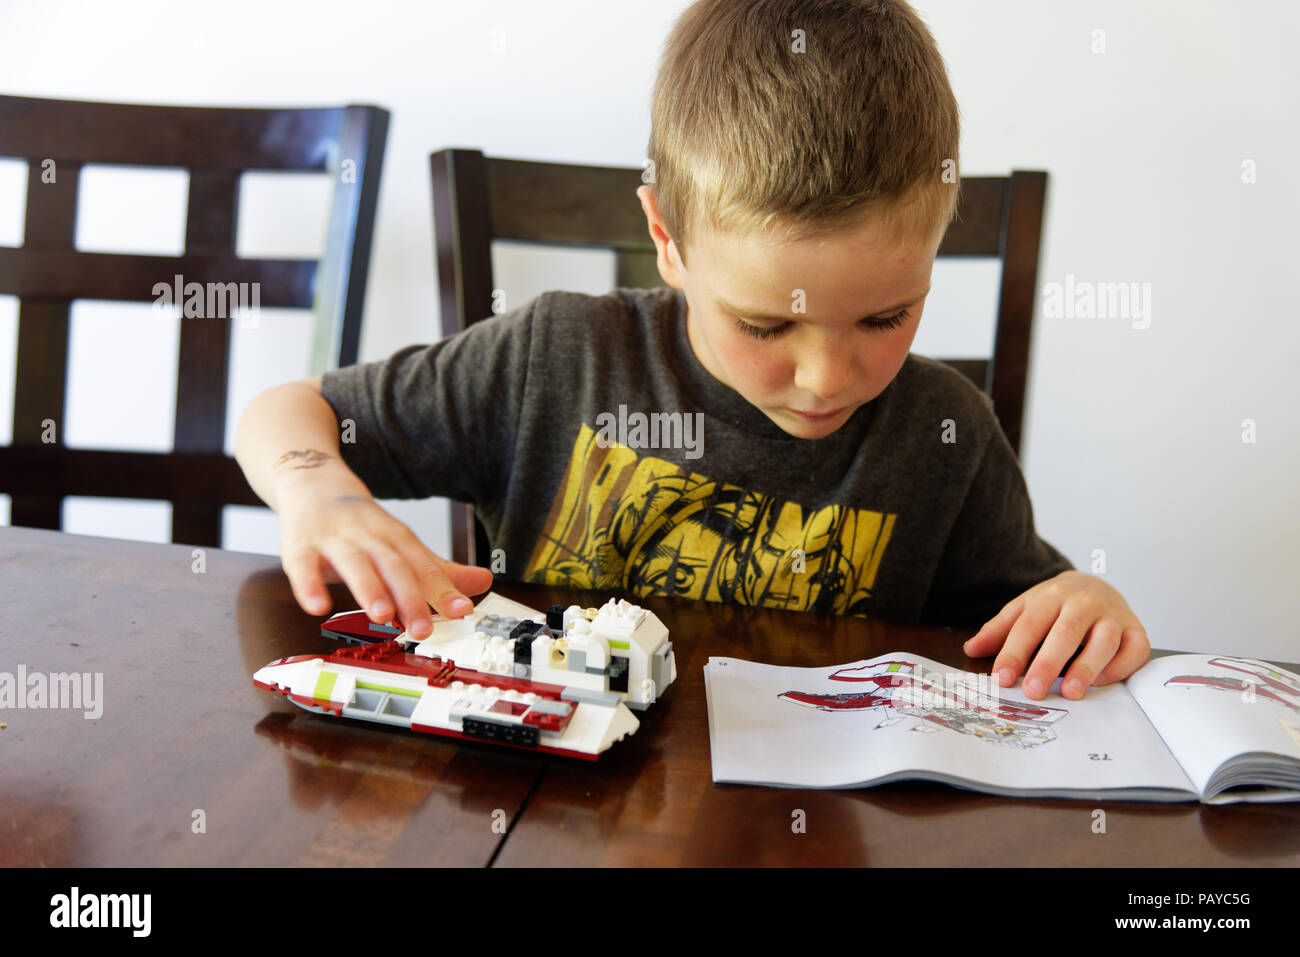 A young boy (6 yr old) concentrating on making his Lego Star Wars fighter - Stock Image